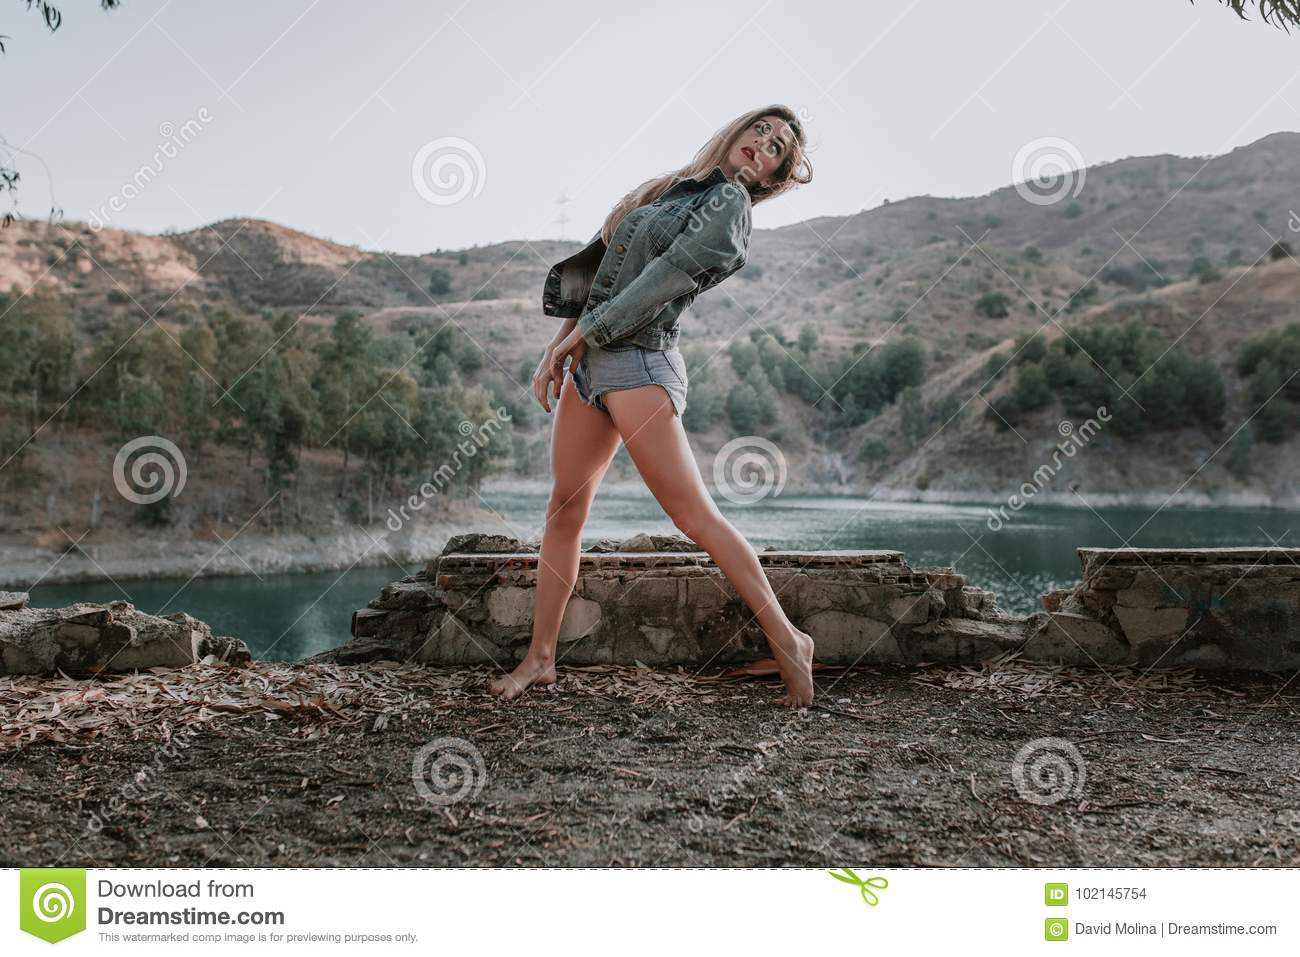 Woman in shorts and jacket posing in nature.